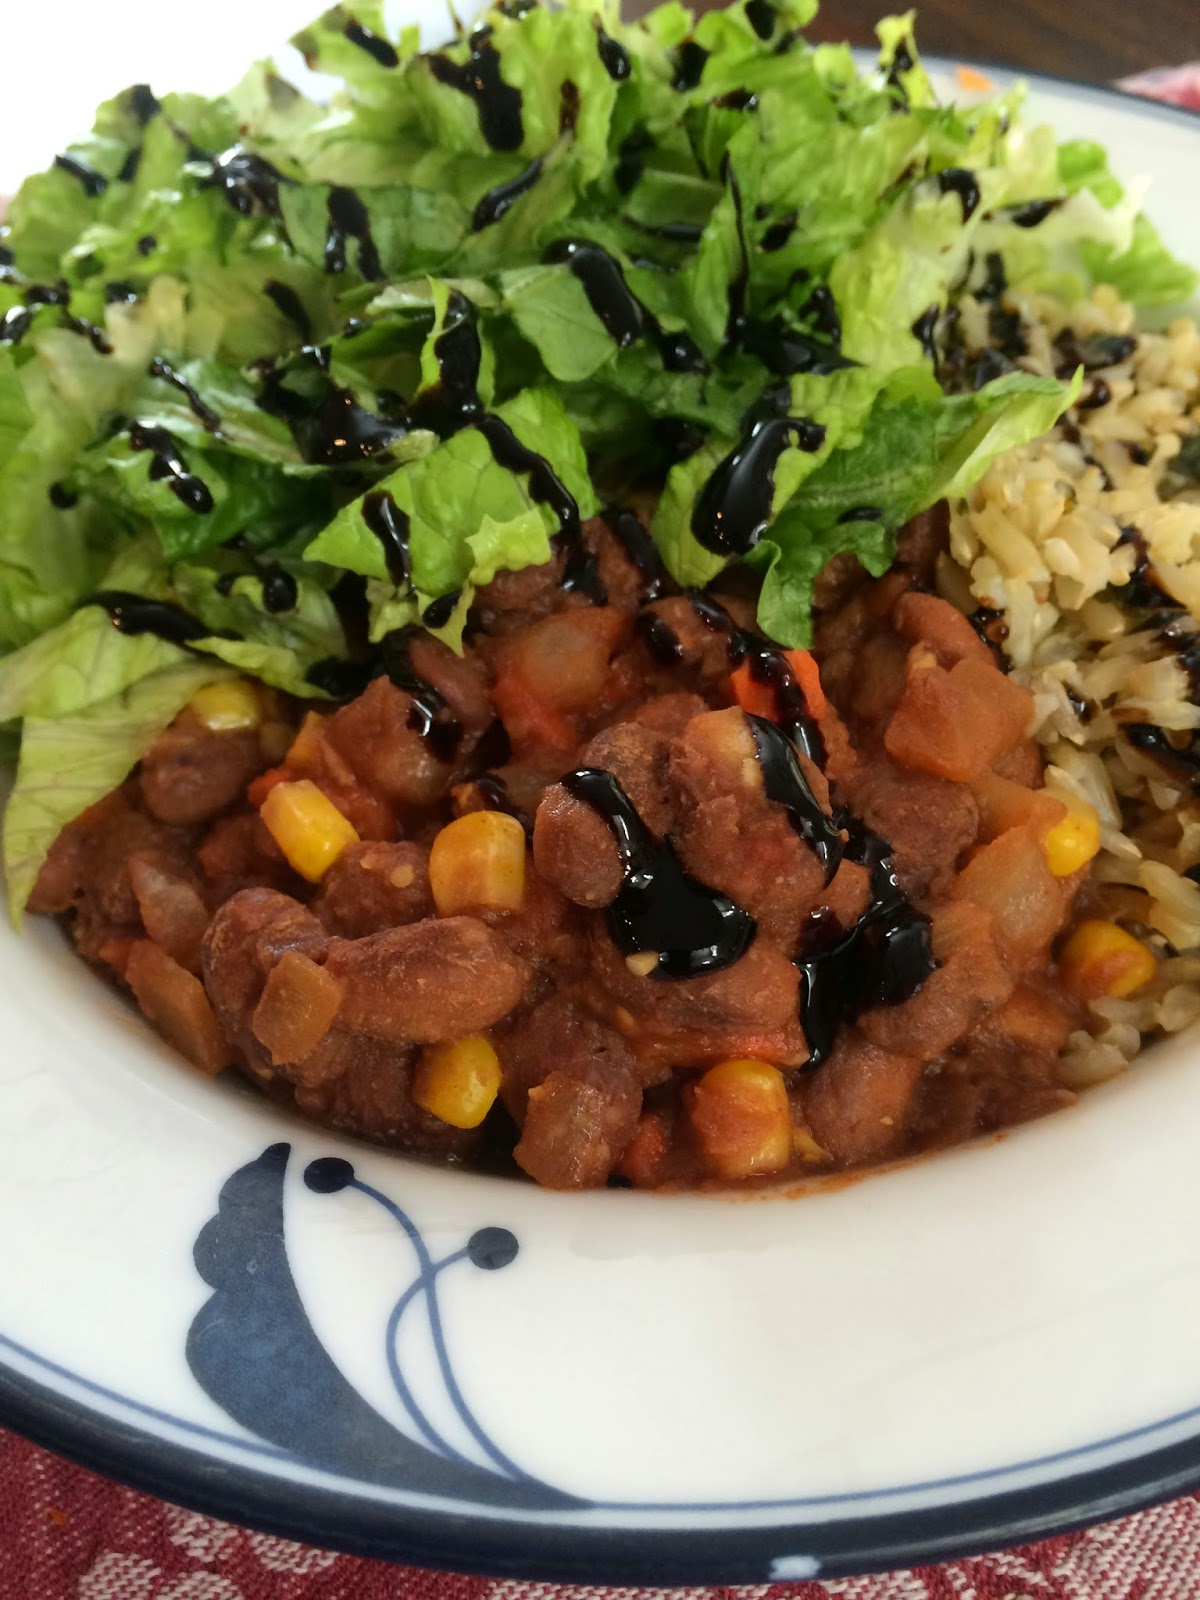 Food Garden Recipes: Vegetarian Pinto Beans and Brown Rice